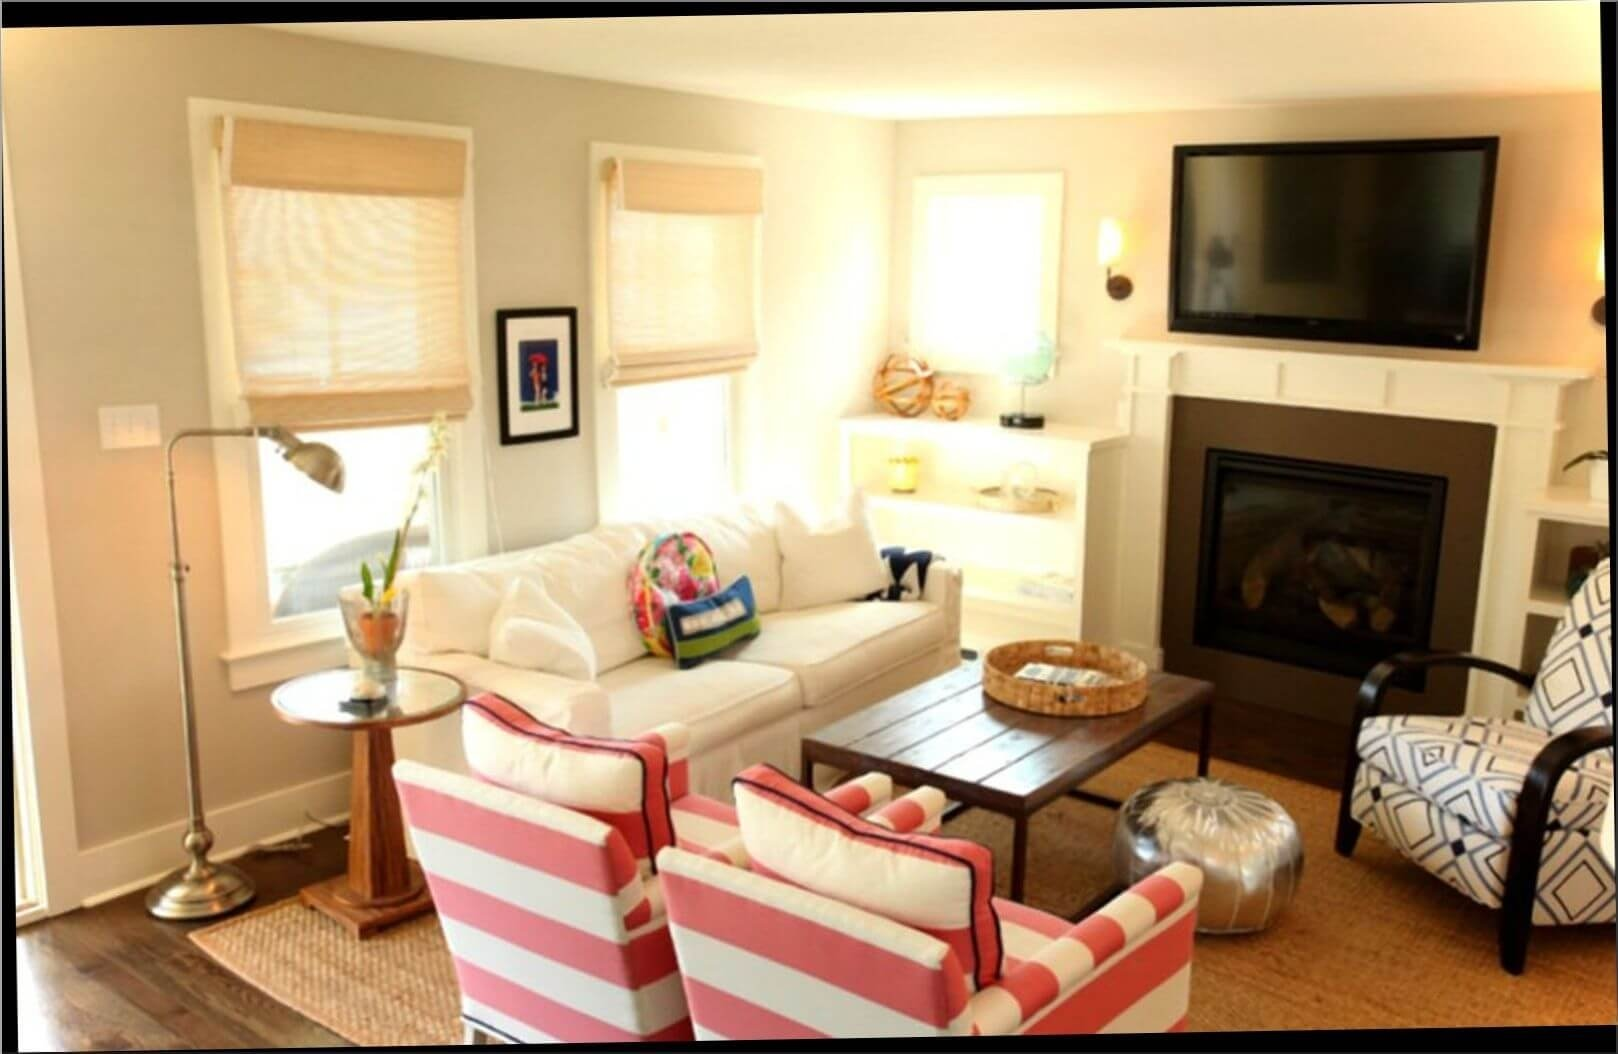 10 Great Family Room Furniture Layout Ideas living room furniture layout ideas living room layouts and ideas